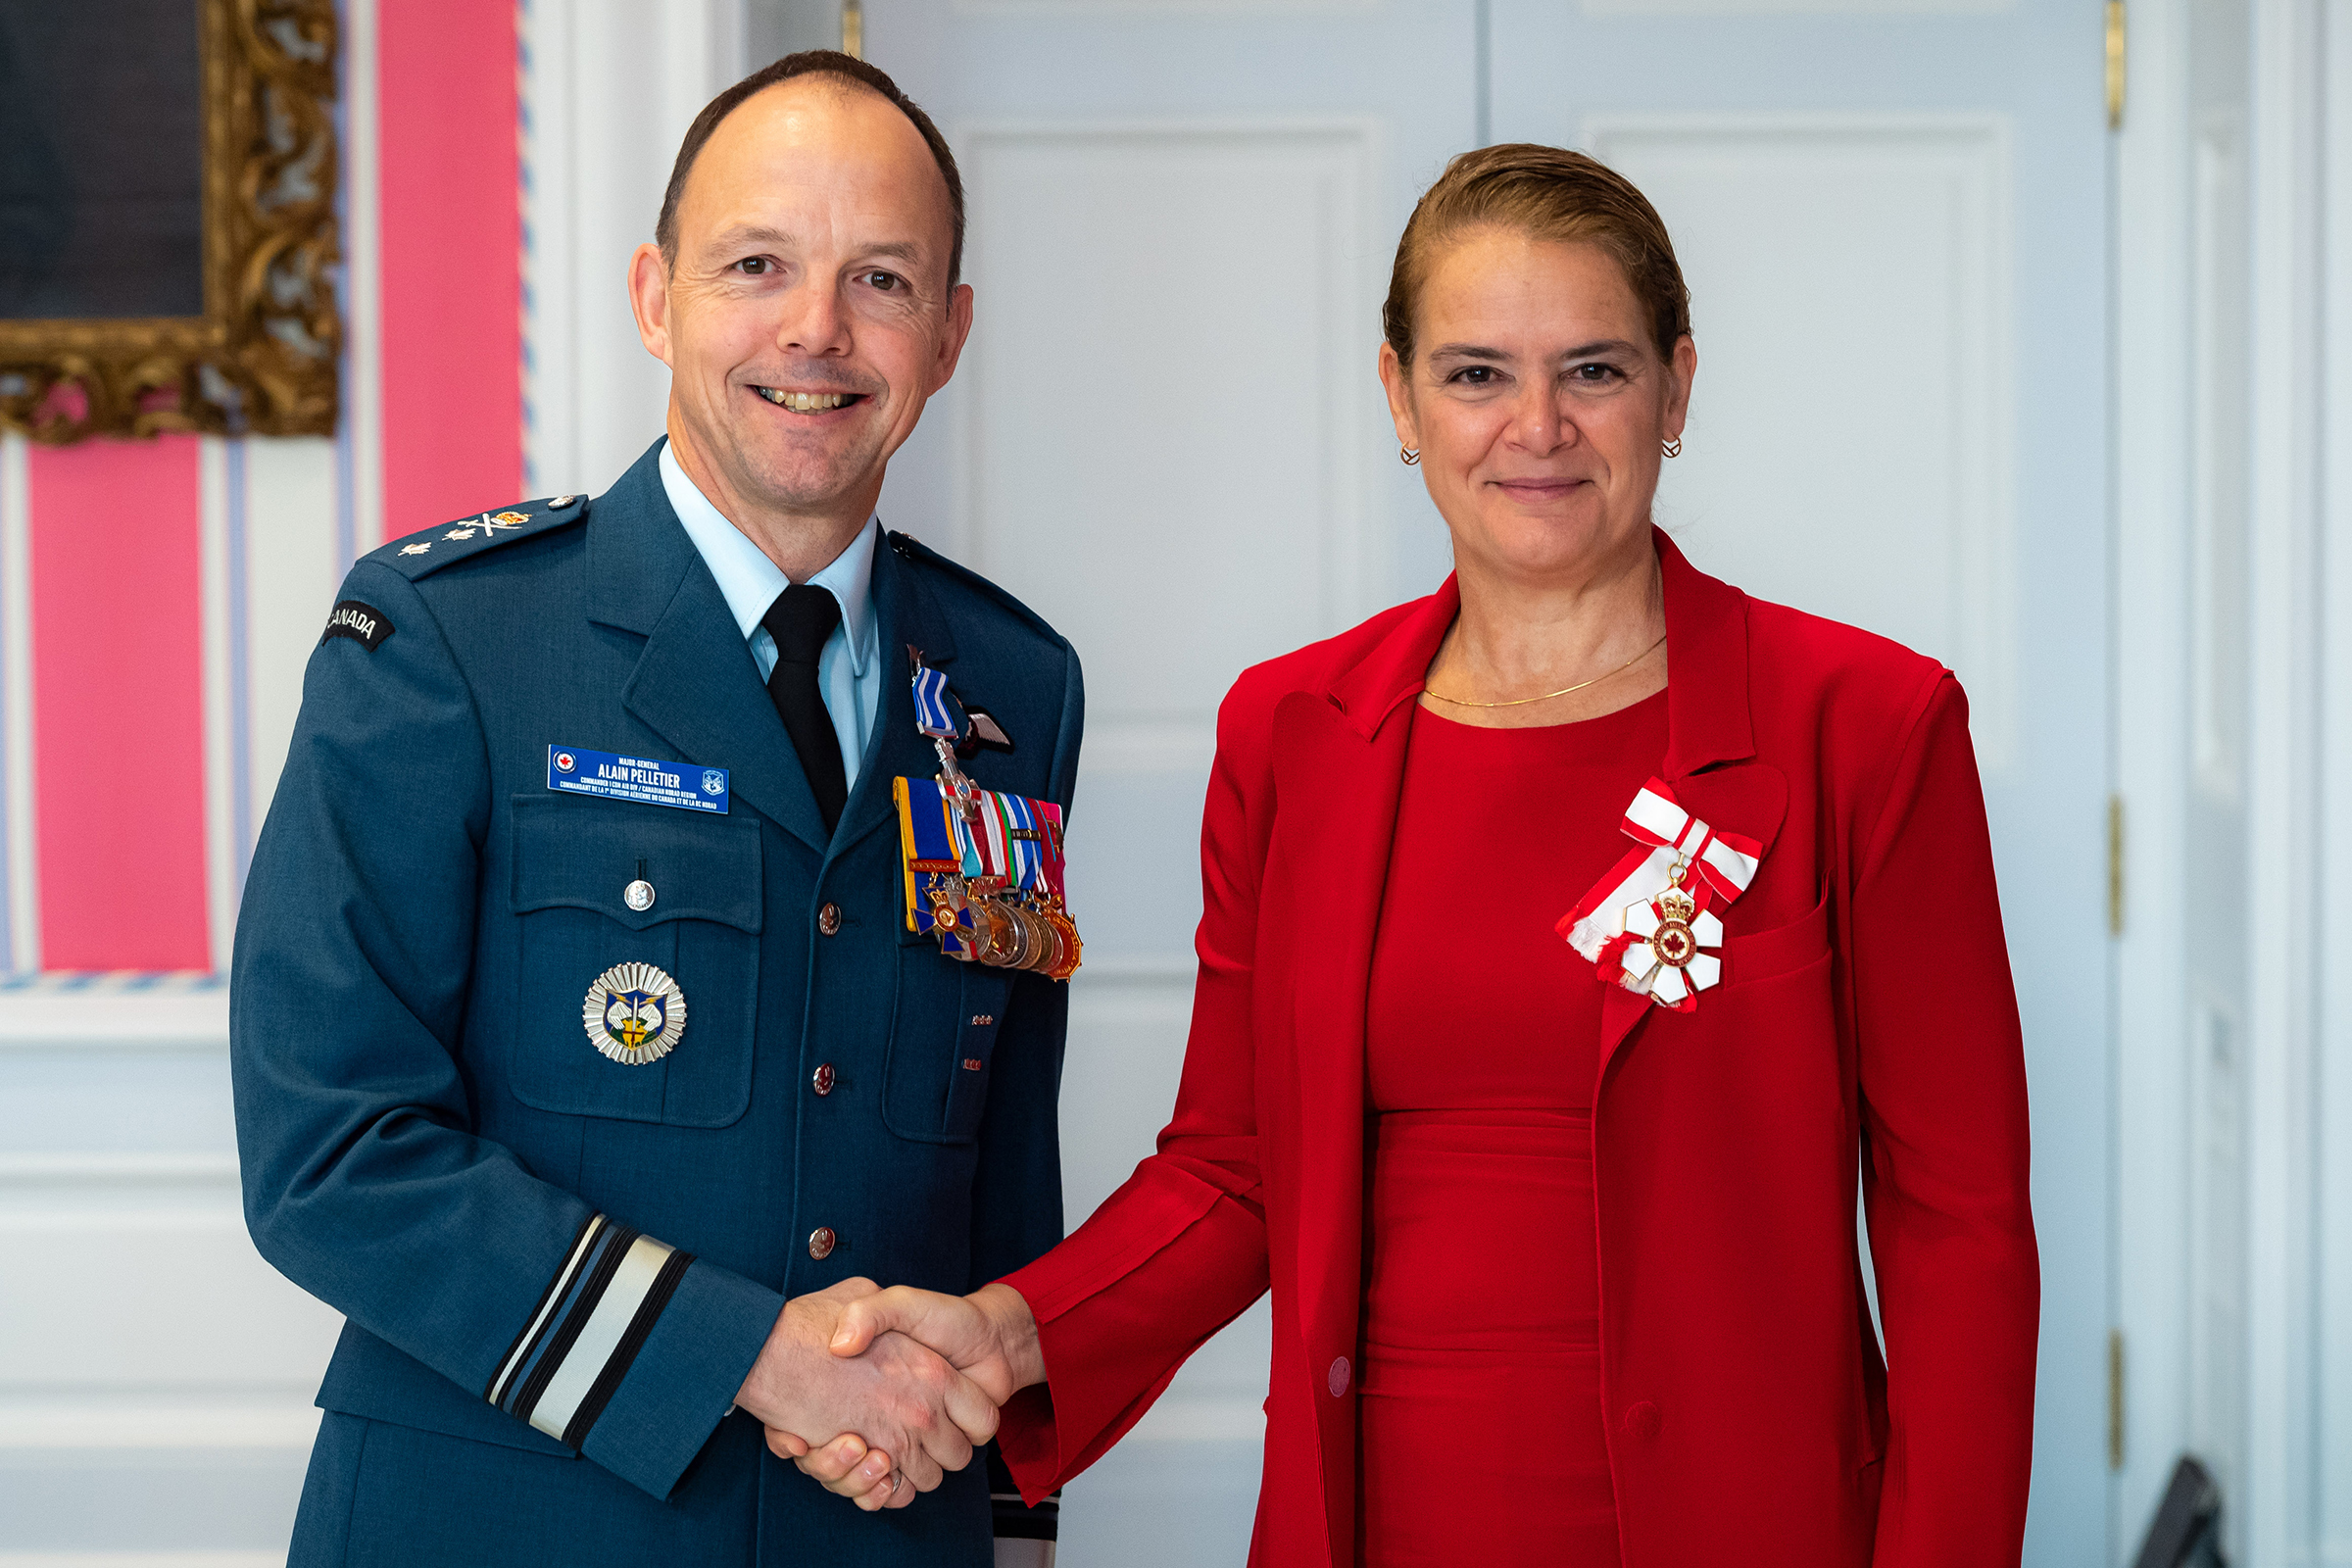 Governor General and Commander-in-Chief of Canada Julie Payette presents Major-General Alain Joseph Paul Pelletier with the Meritorious Service Cross (Military Division) on November 12, 2019. PHOTO: Master Corporal Mathieu Gaudreault, GG06-2019-0257-021, © OSGG